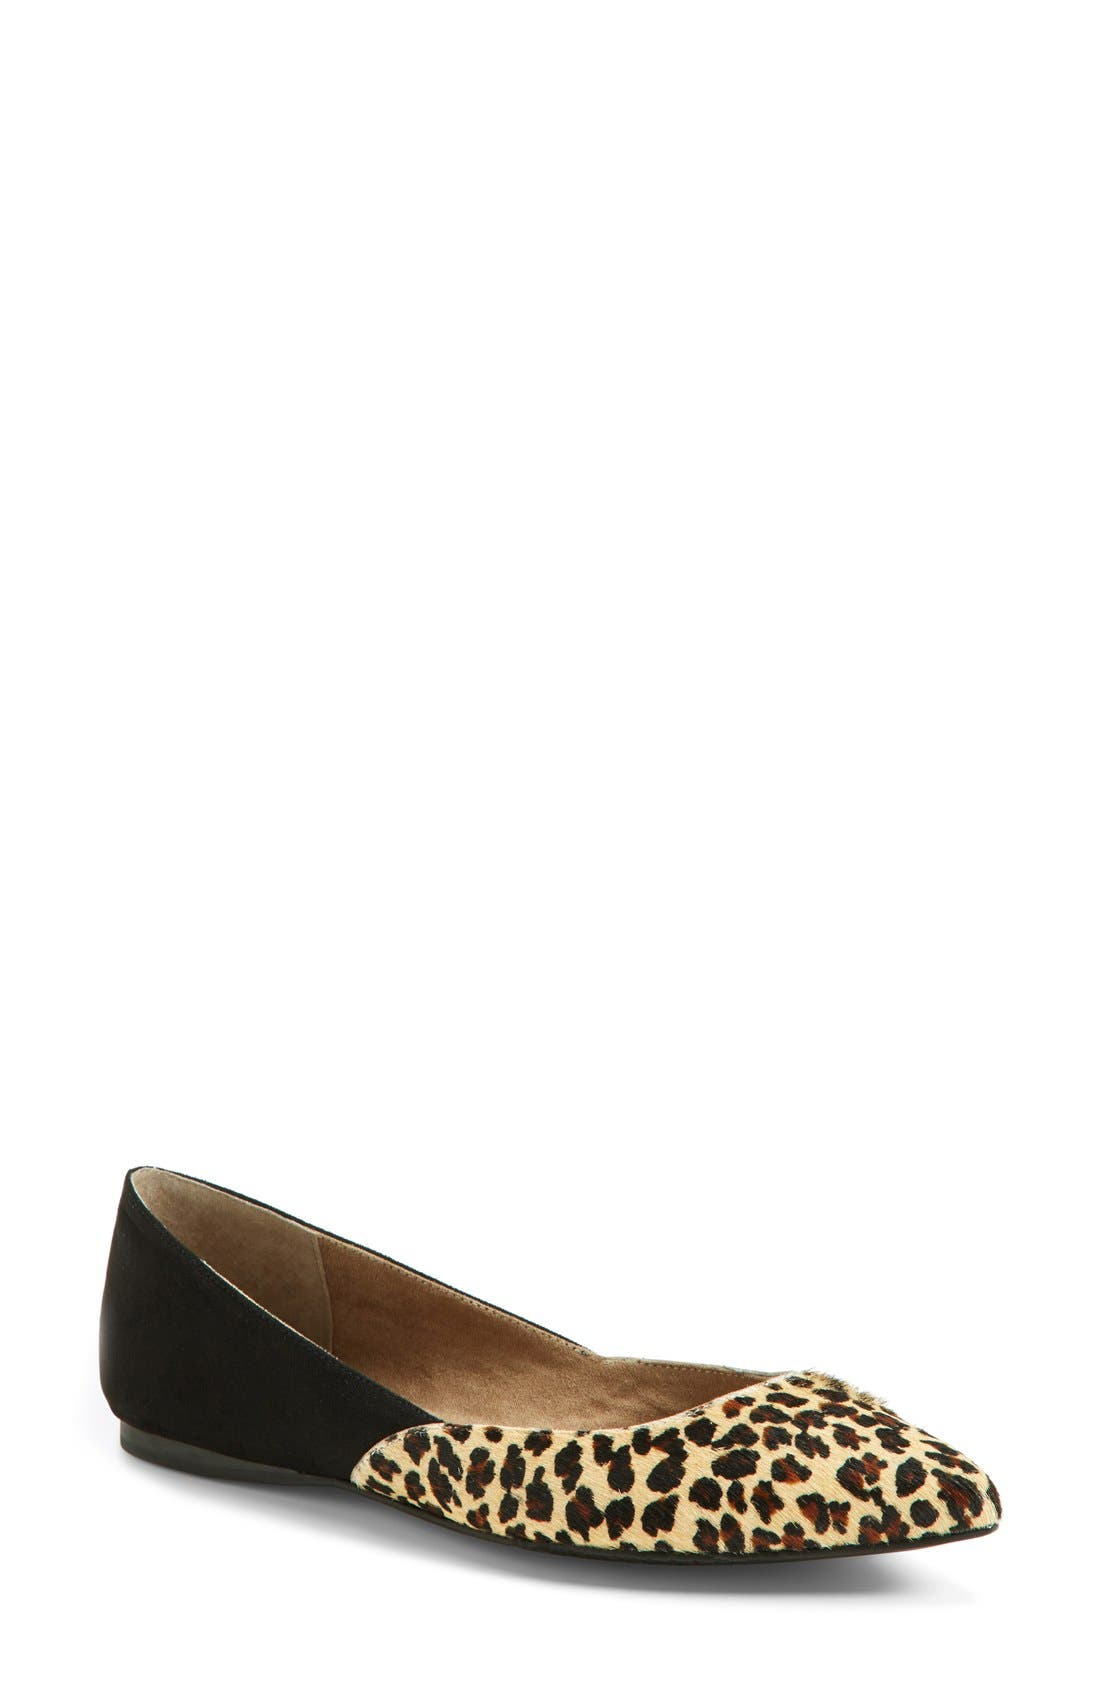 'Doubletime' Pointy Toe Flat,                         Main,                         color, 006